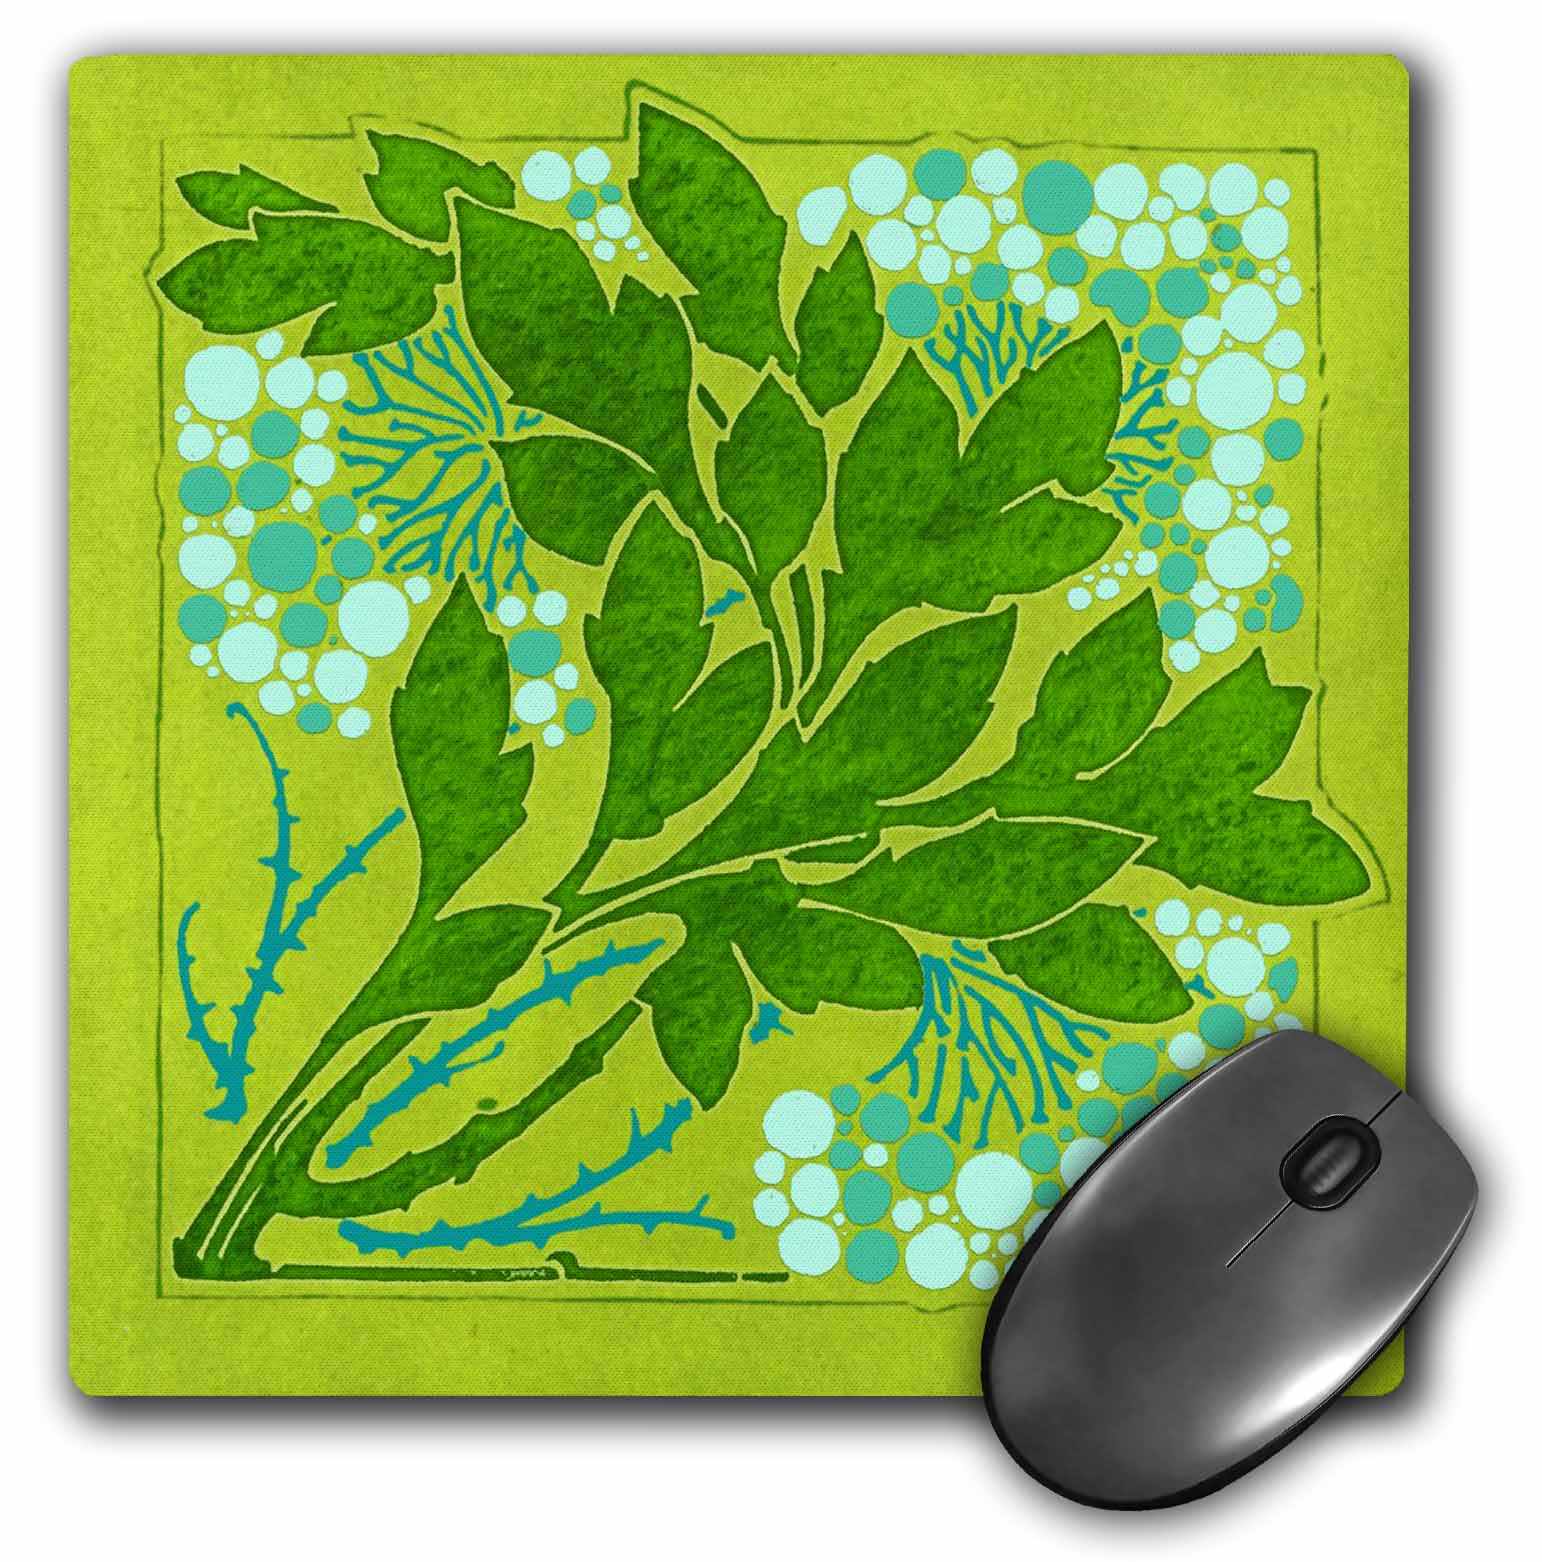 3dRose Nature in Green, Mouse Pad, 8 by 8 inches